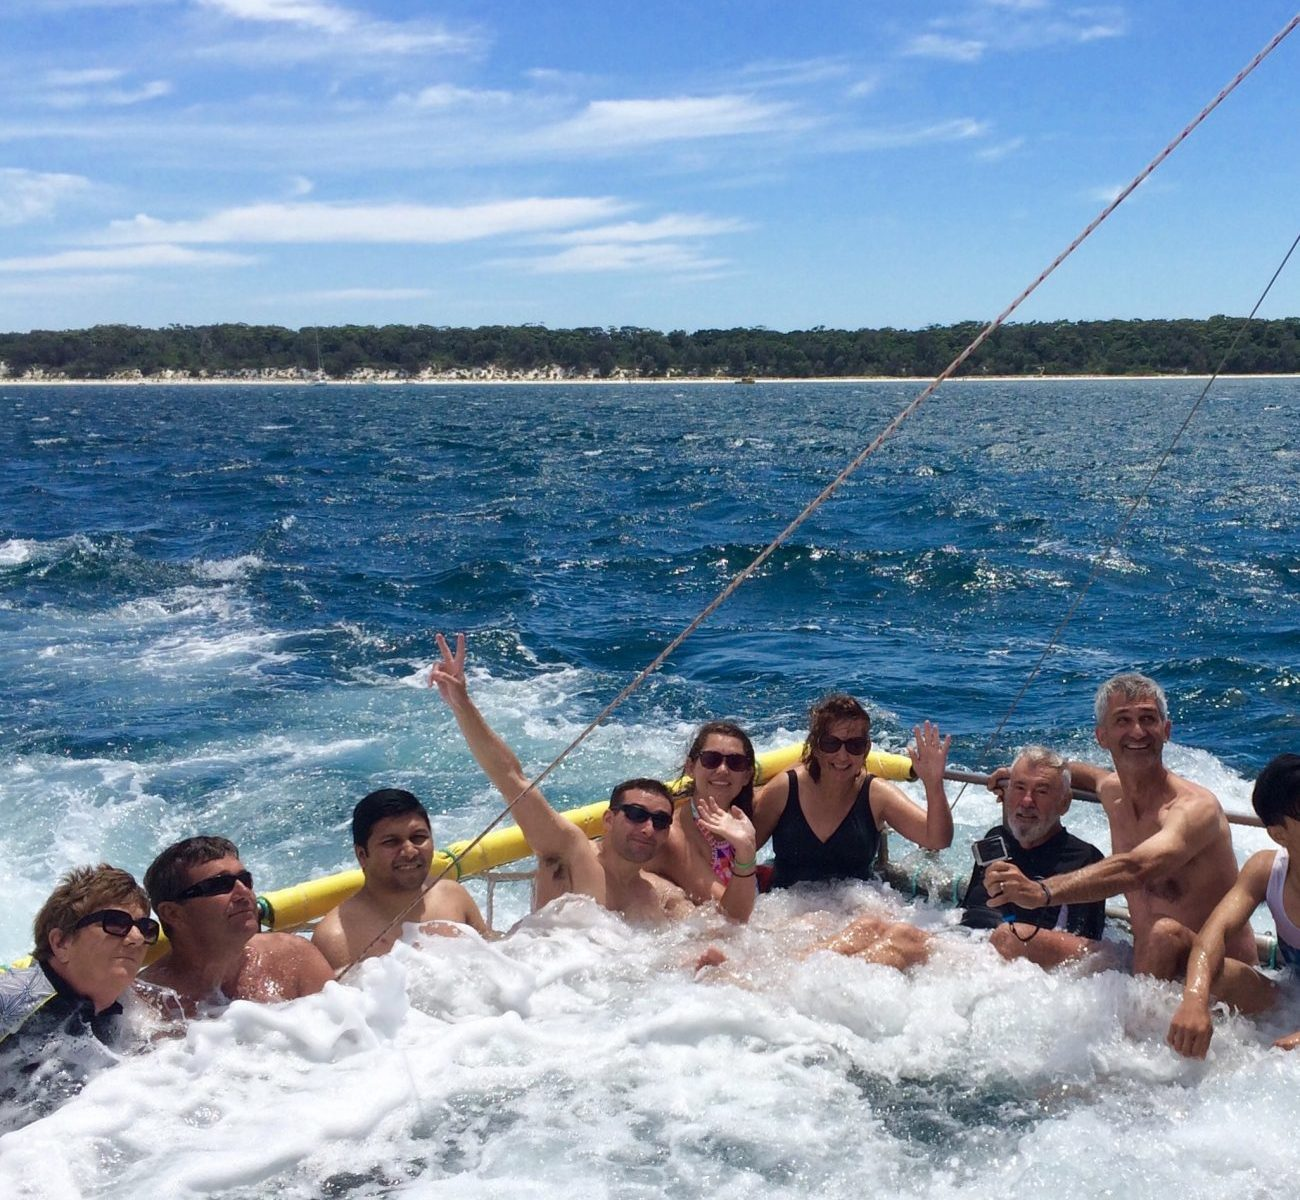 Boom netting fun on Jervis Bay